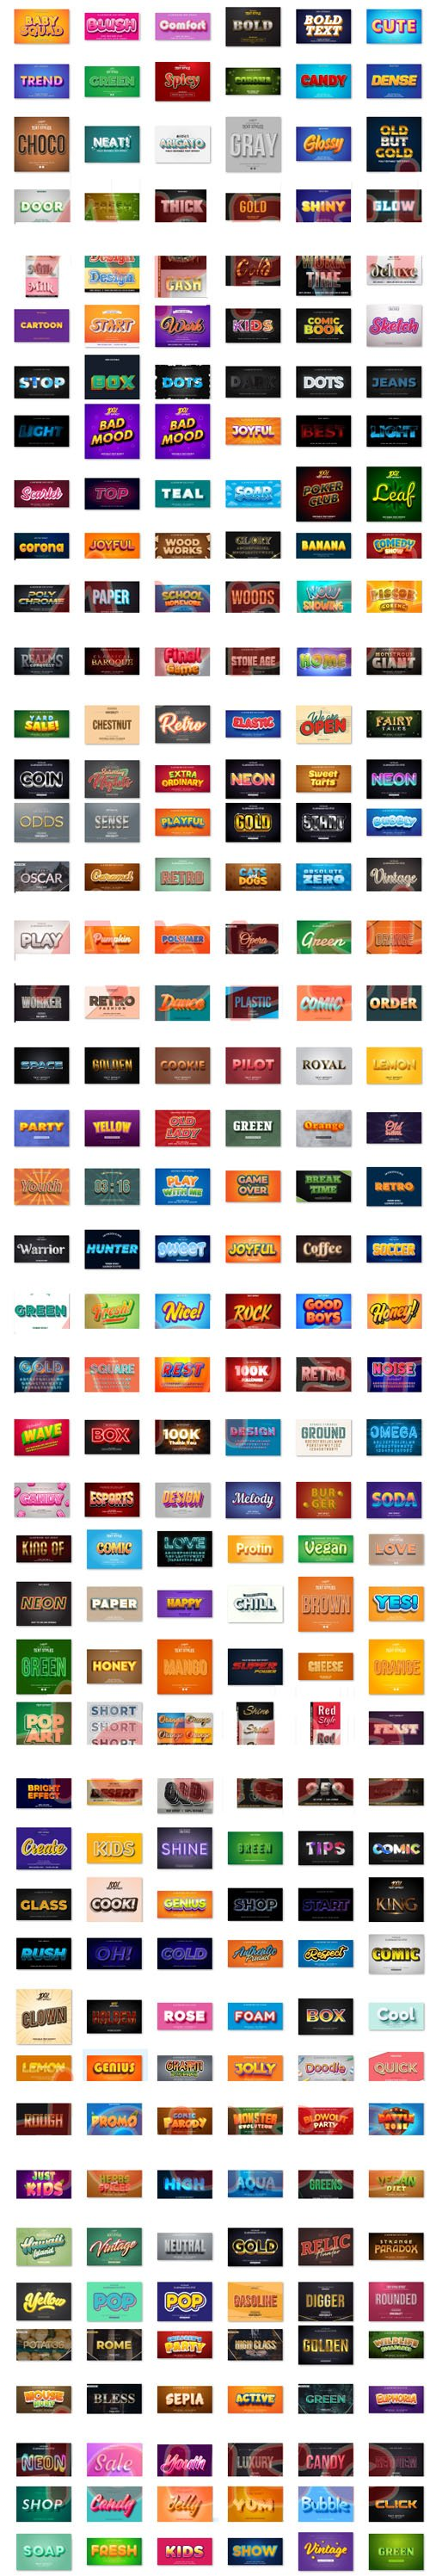 222 Editable Text Effects Illustration Design Collection